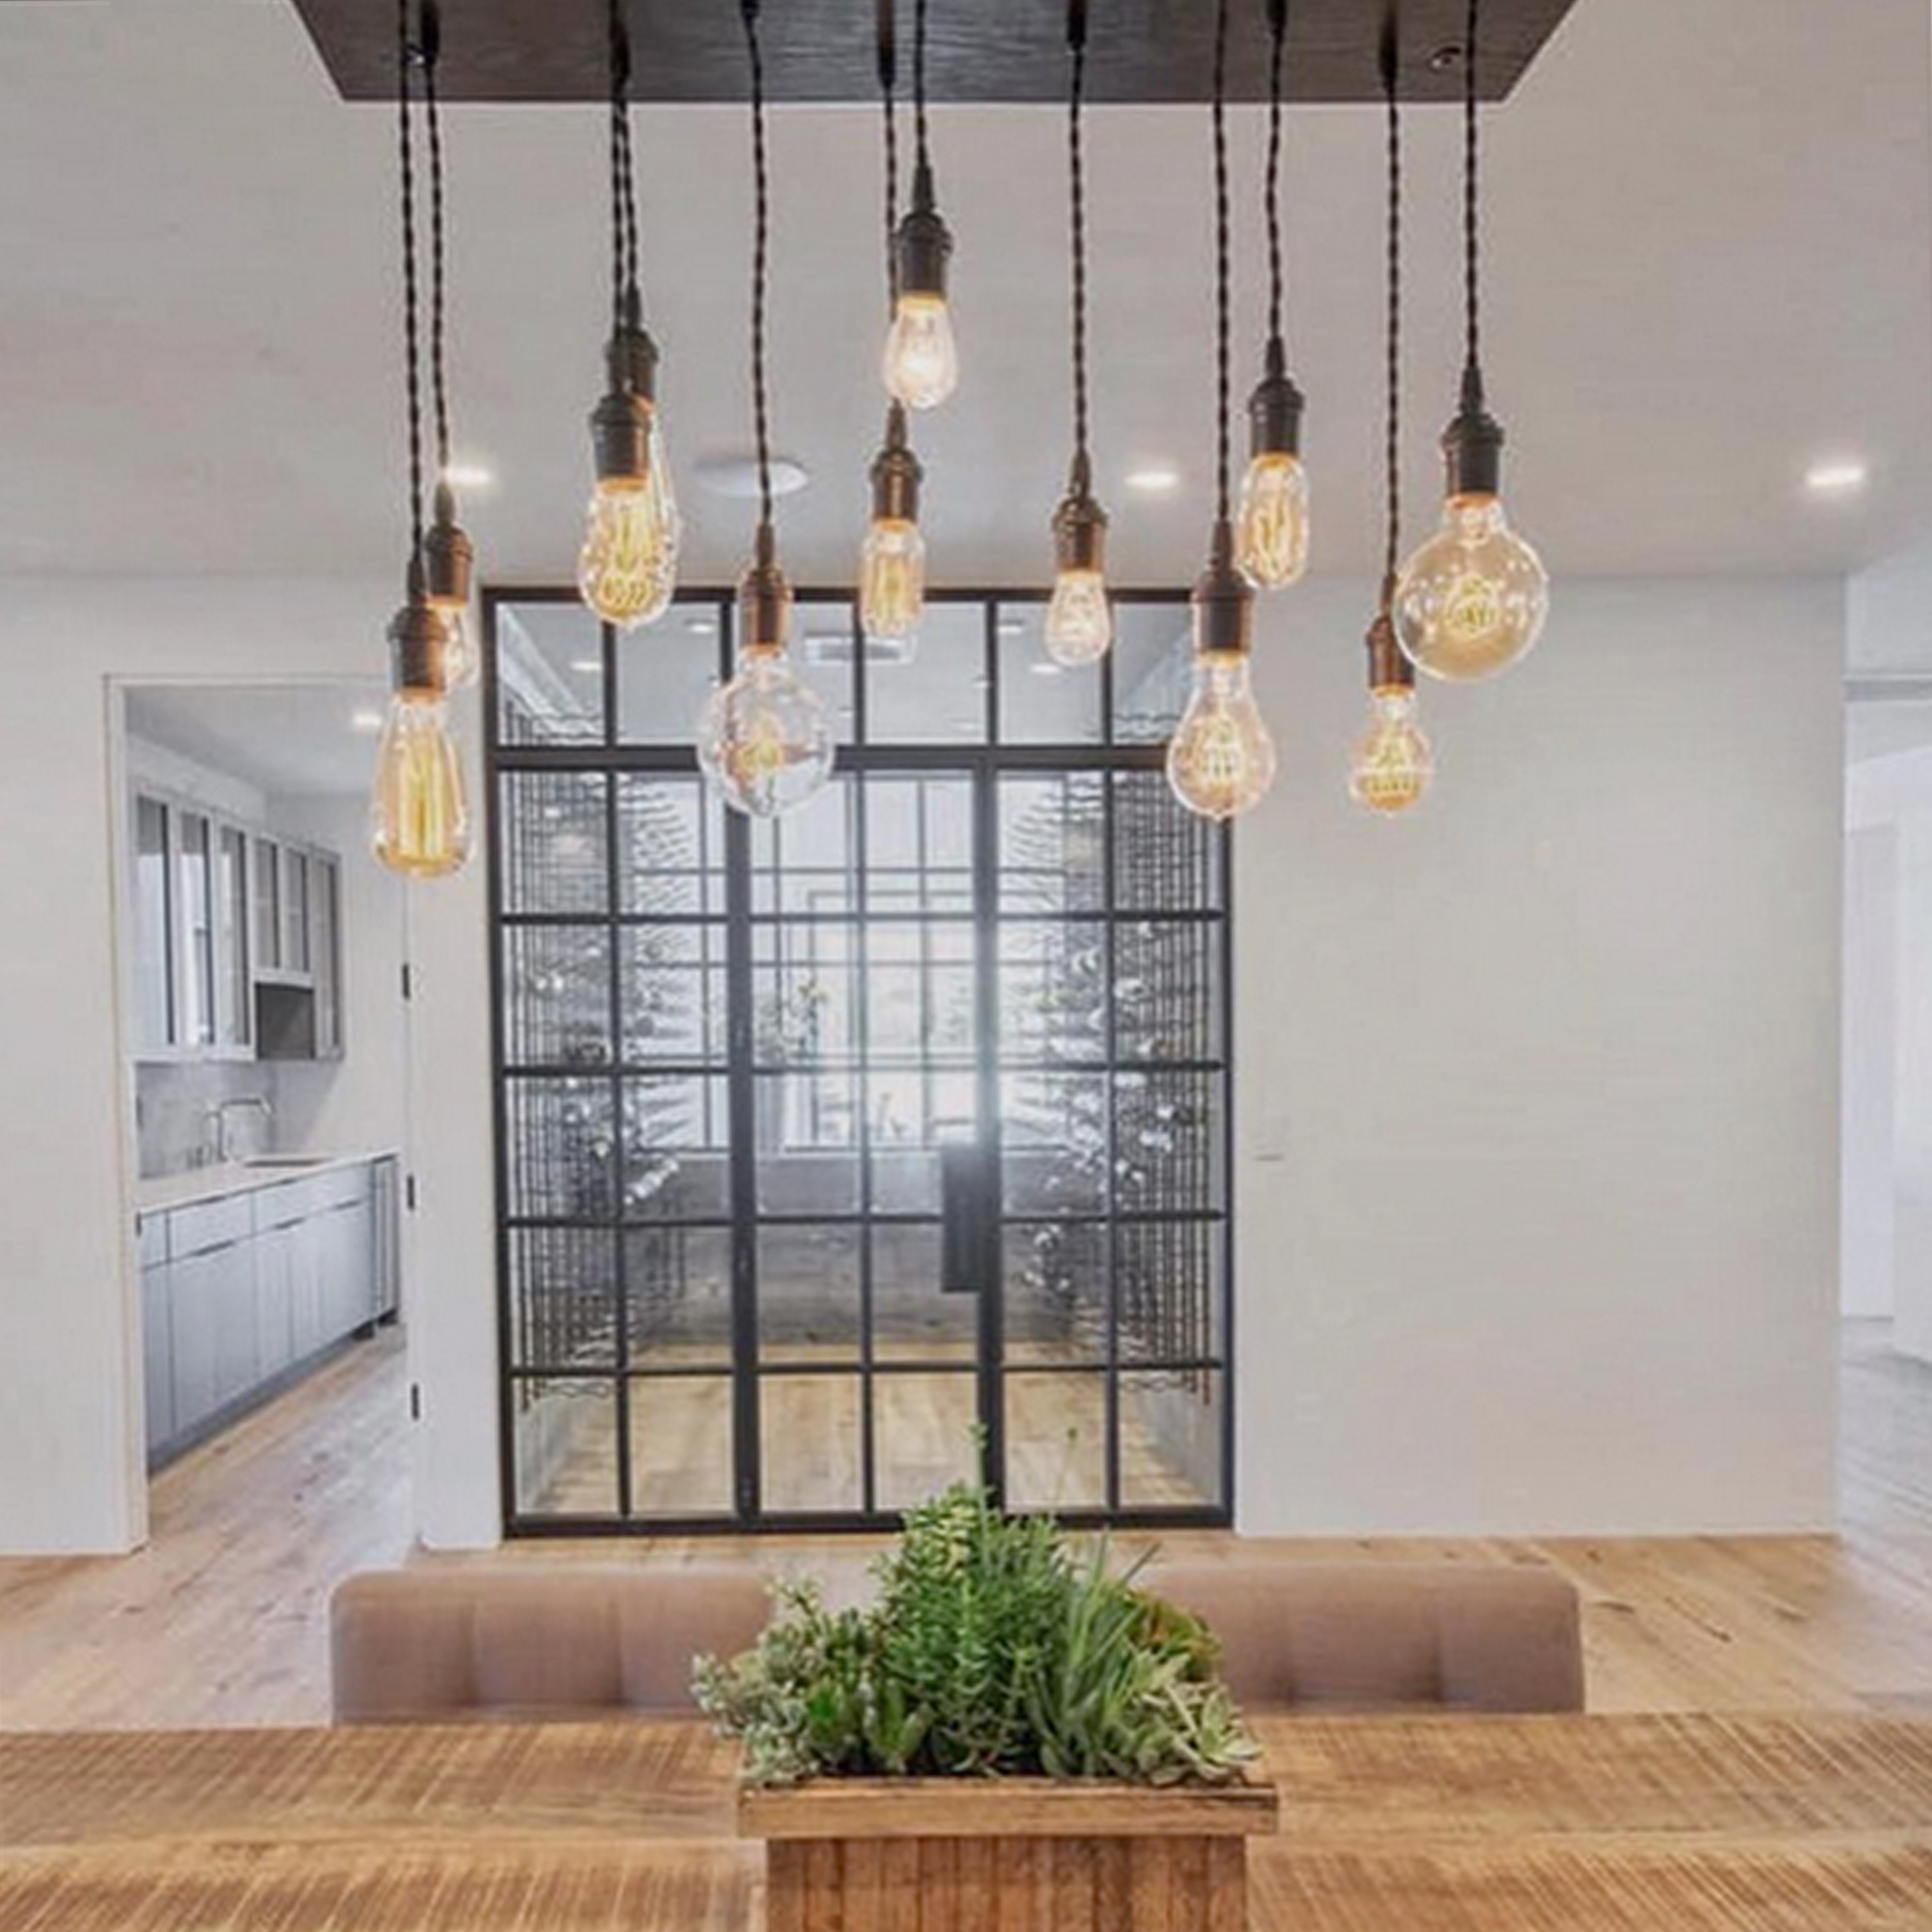 Industrial Pendant Chandelier over a table